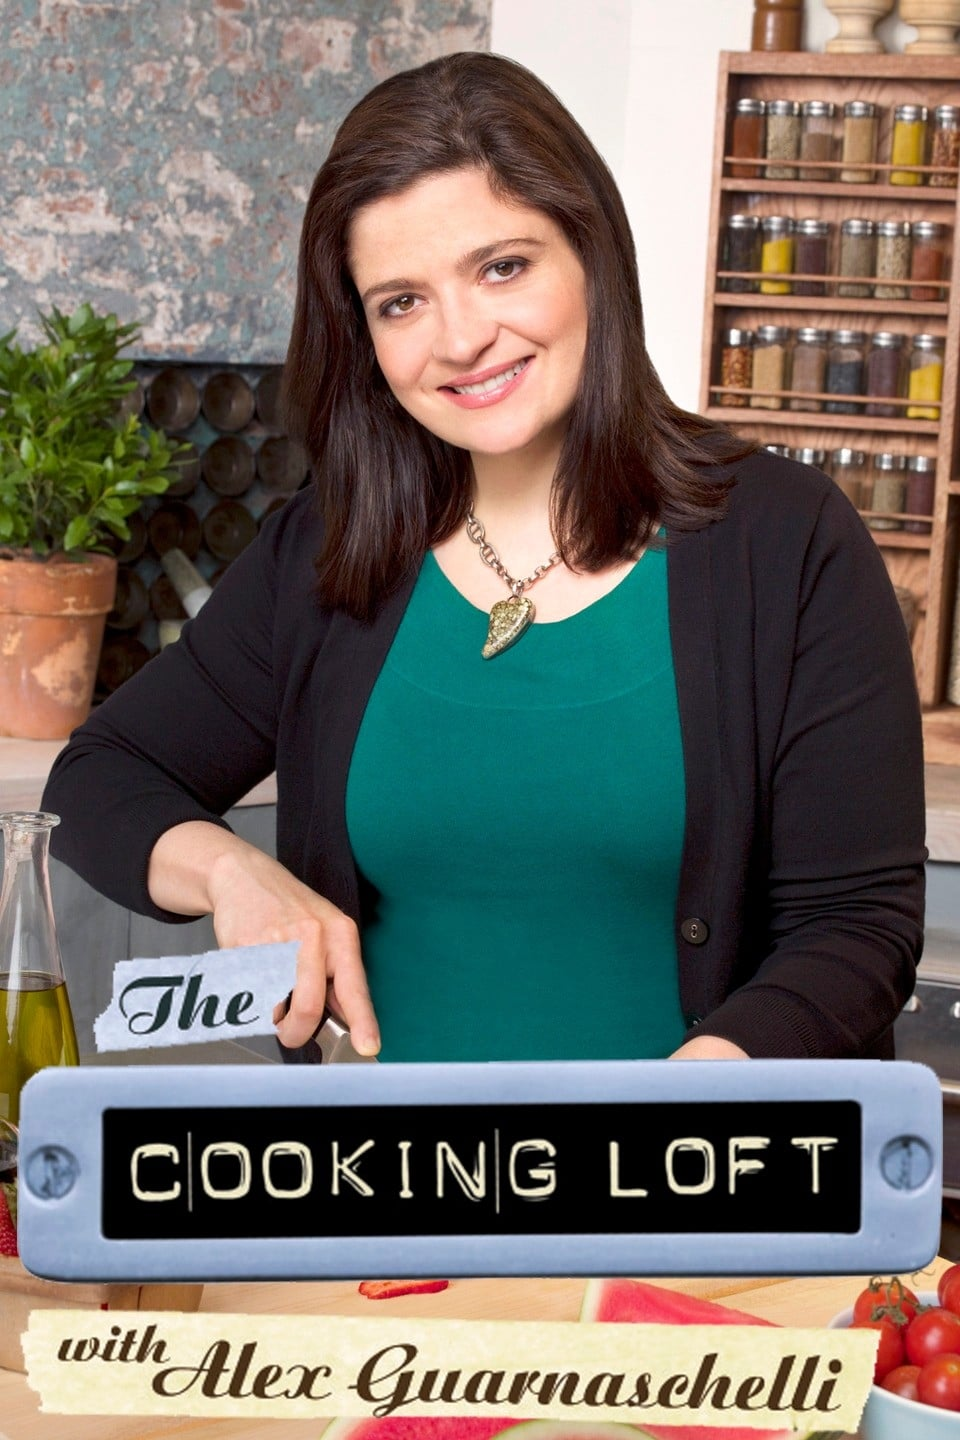 The Cooking Loft (2008)